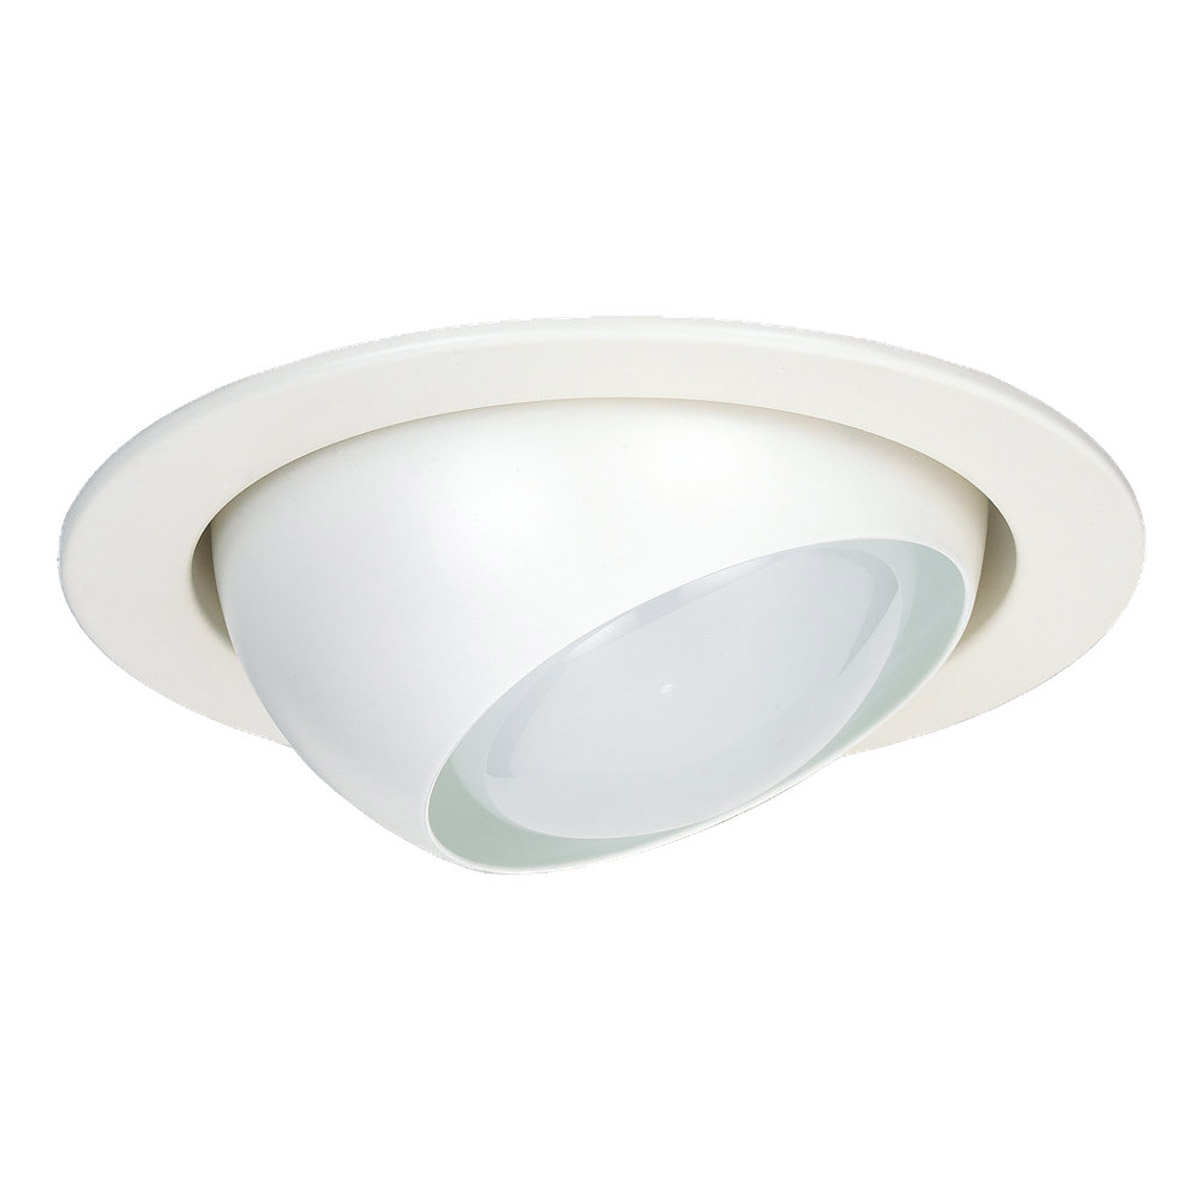 Sea Gull Lighting Signature Recessed Trim Only in White 1166AT-15